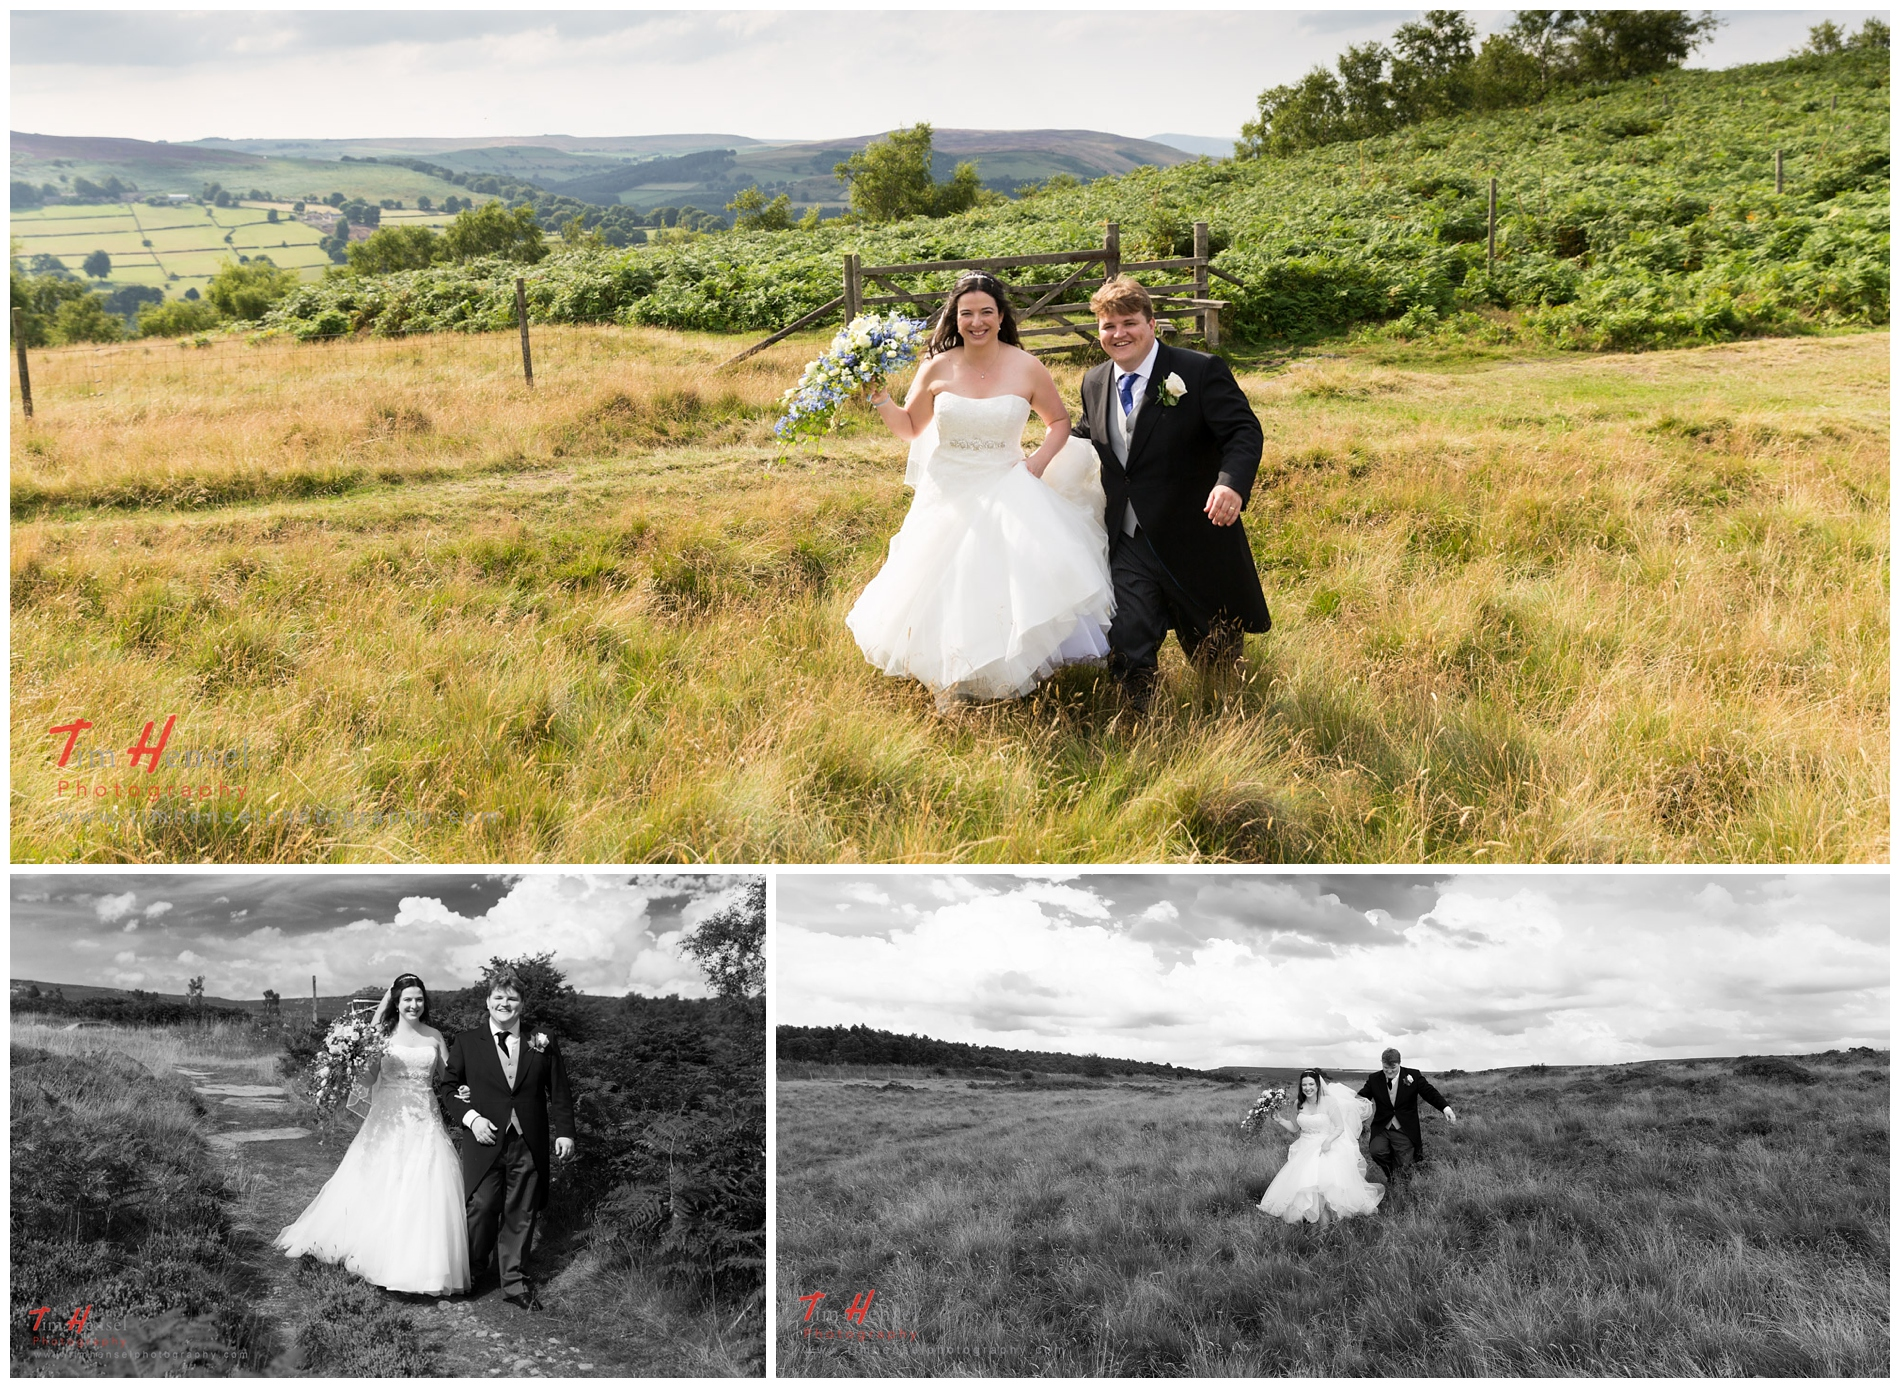 relaxed natural wedding photographer in derbyshire's peak district